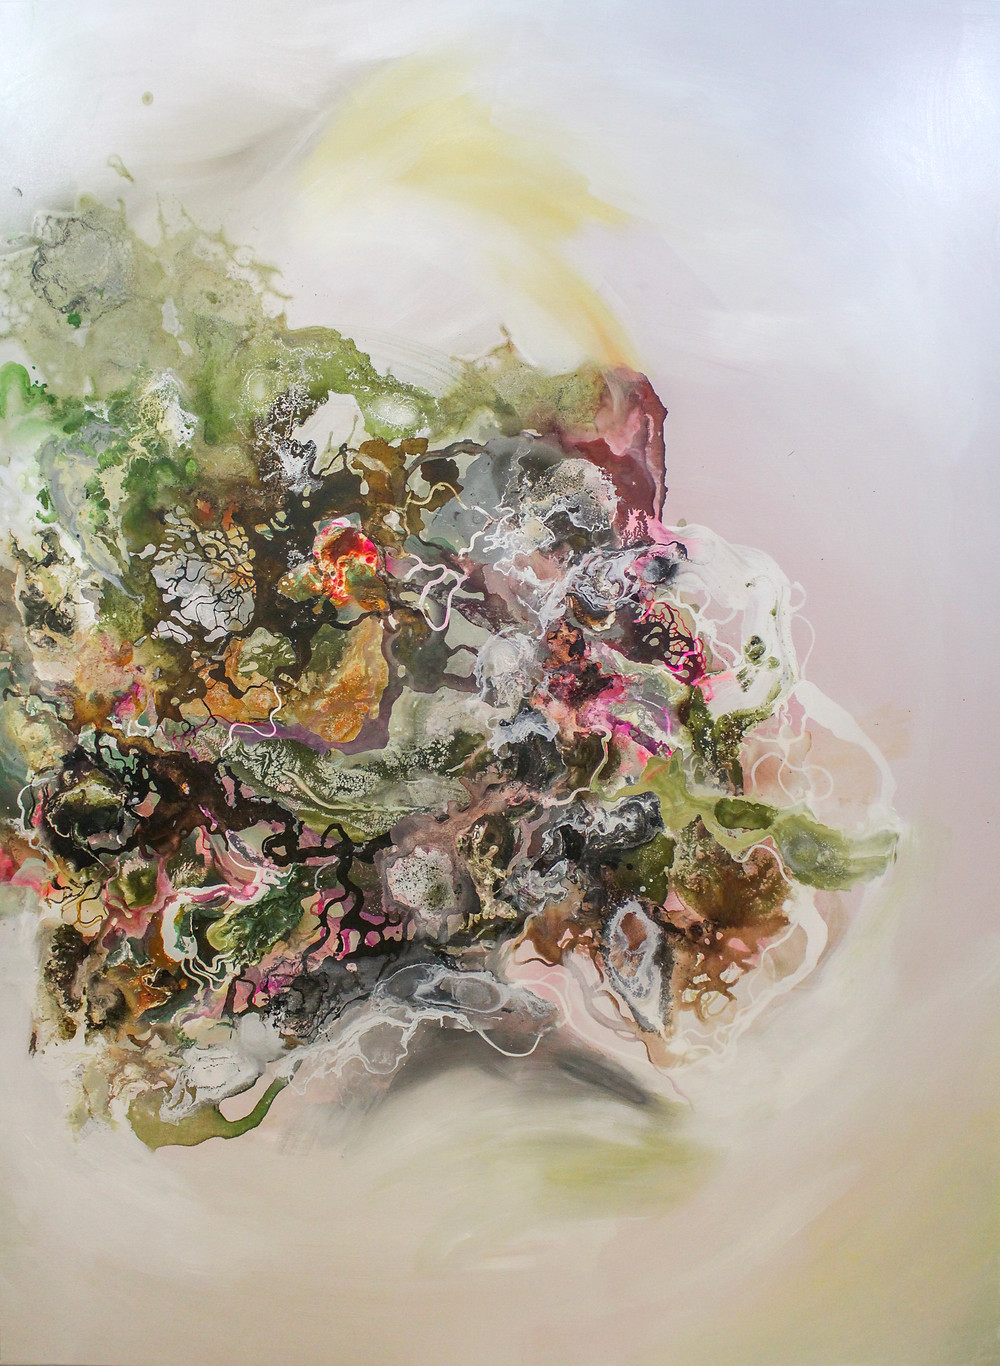 Vietnamese artist Le Tuan Ry Mixed Media on Canvas